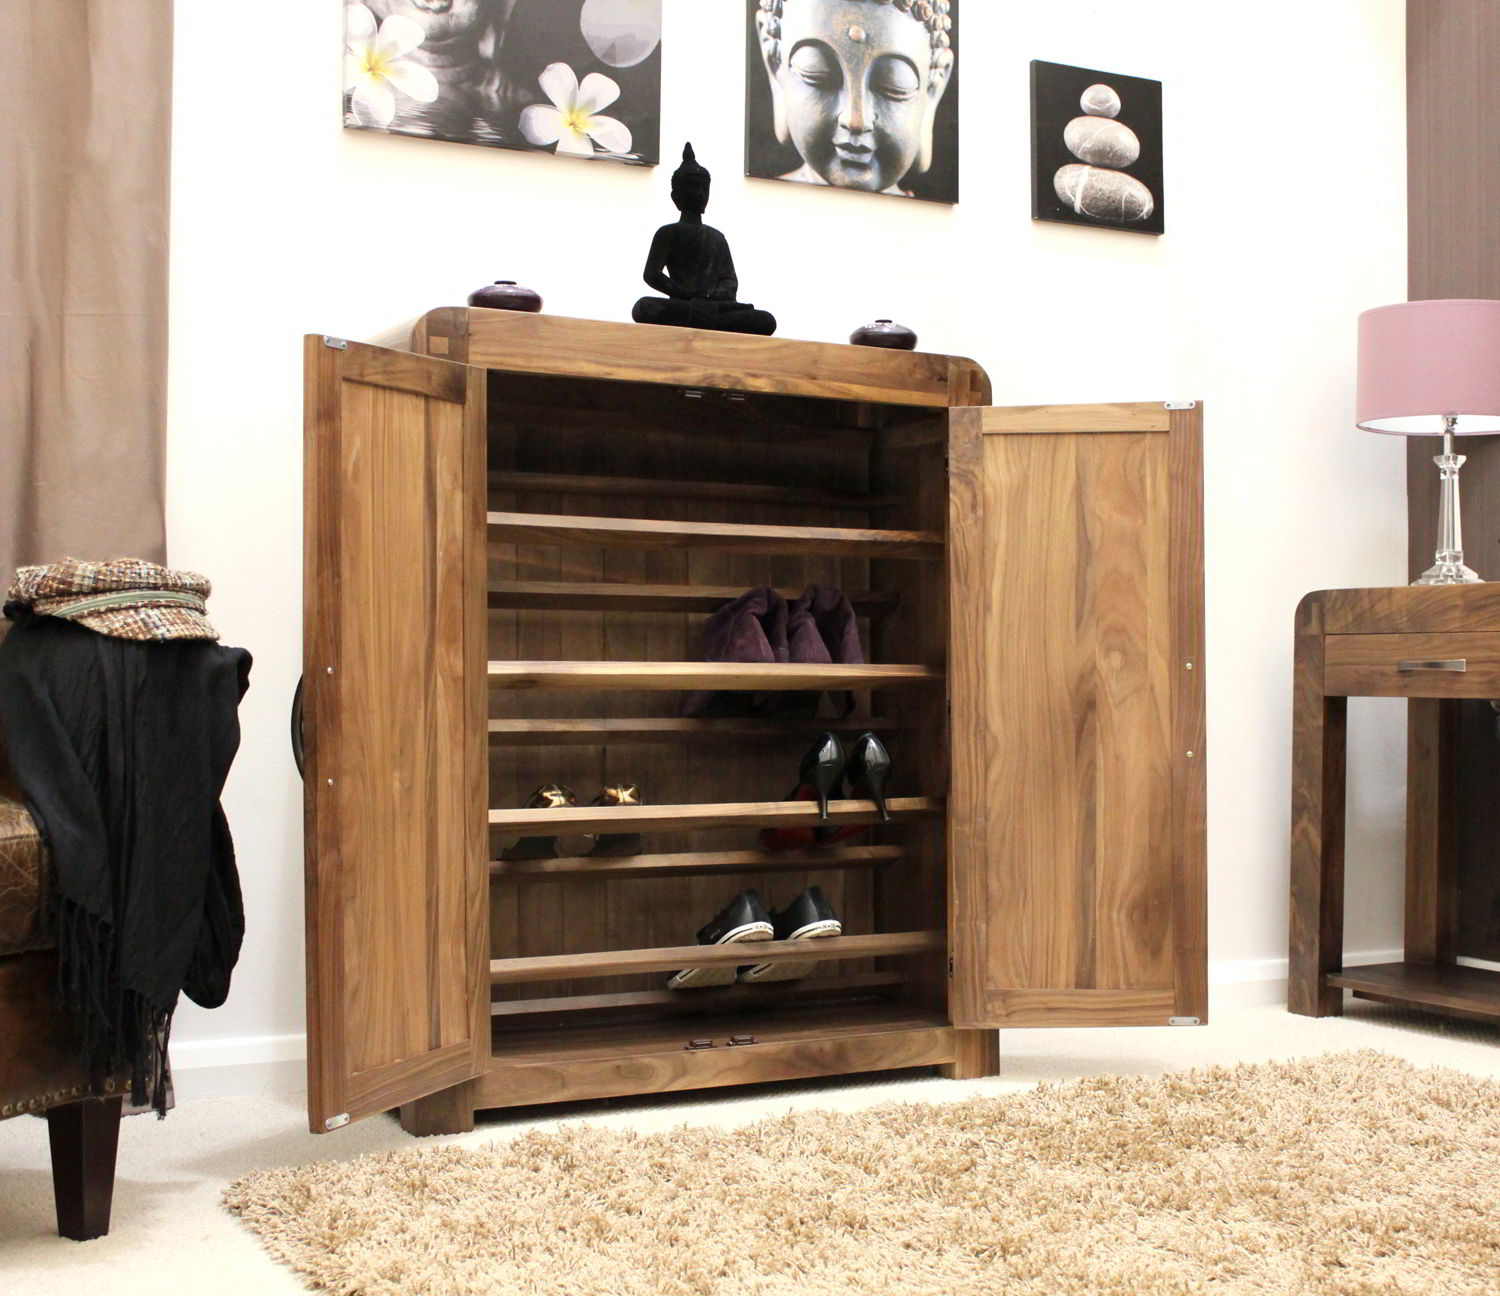 strathmore solid walnut home furniture hallway shoe storage cabinetcupboard rac. strathmore solid walnut home furniture hallway shoe storage